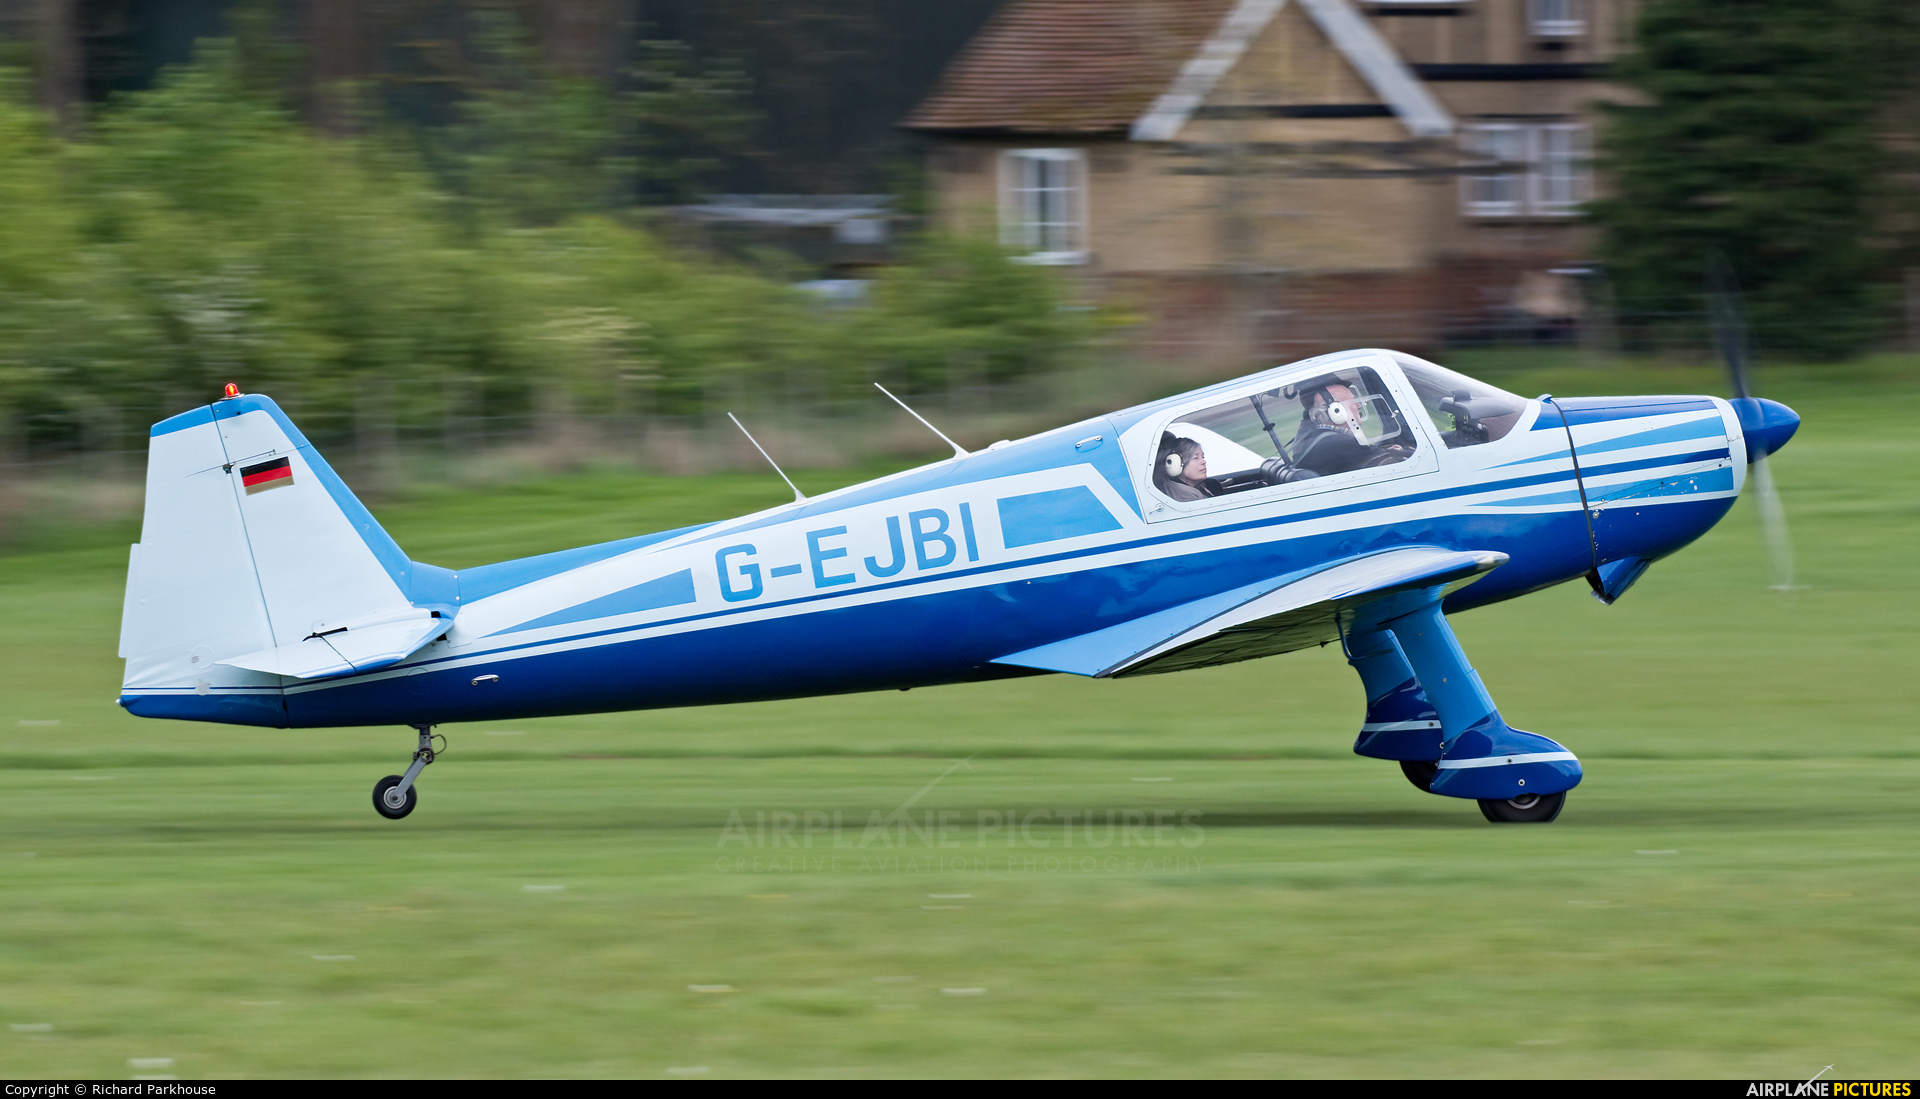 Private G-EJBI aircraft at Old Warden